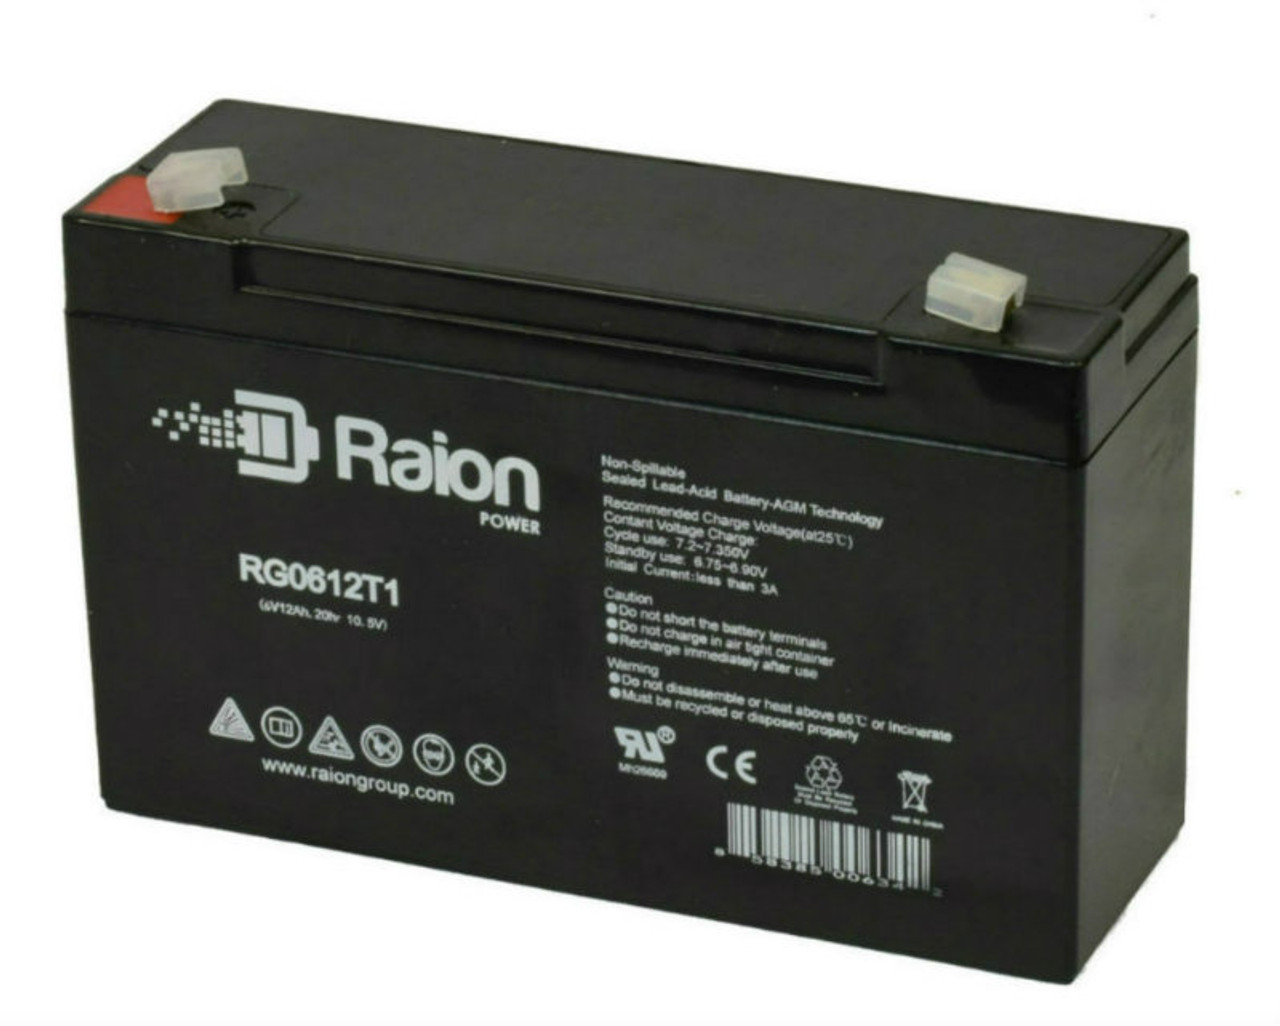 Raion Power RG06120T1 Replacement Battery Pack for Dual-Lite 60631 emergency light